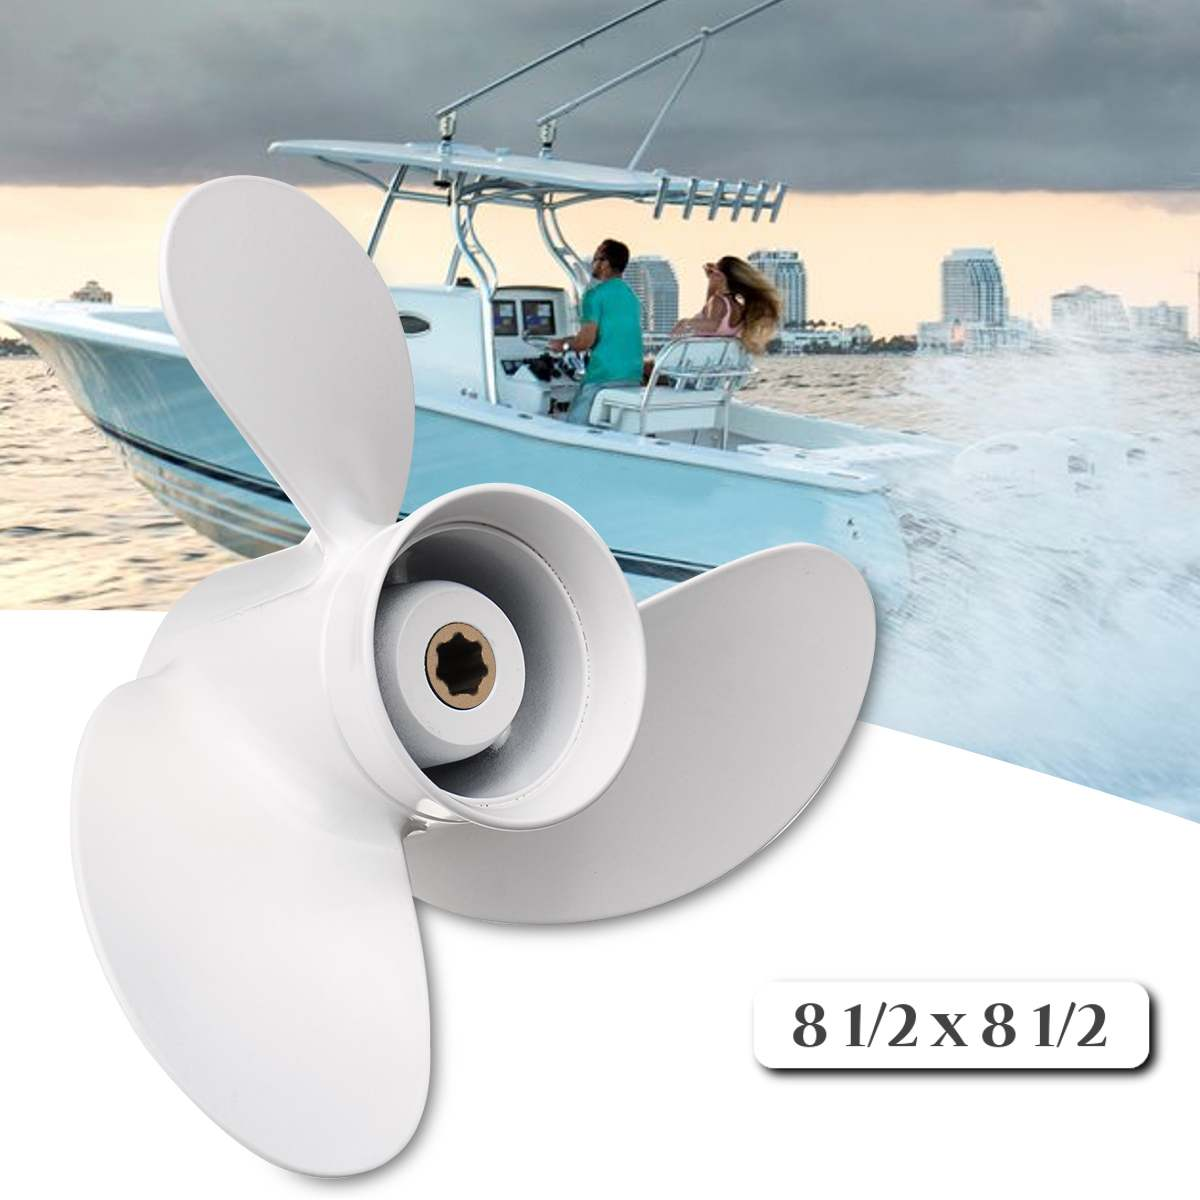 6G1-45941-00-EL for Yamaha 6-8HP 8 1/2 x 8 1/2 Boat Outboard Propeller White Aluminum Alloy 7 Spline Tooths R Rotation 3 Blades6G1-45941-00-EL for Yamaha 6-8HP 8 1/2 x 8 1/2 Boat Outboard Propeller White Aluminum Alloy 7 Spline Tooths R Rotation 3 Blades